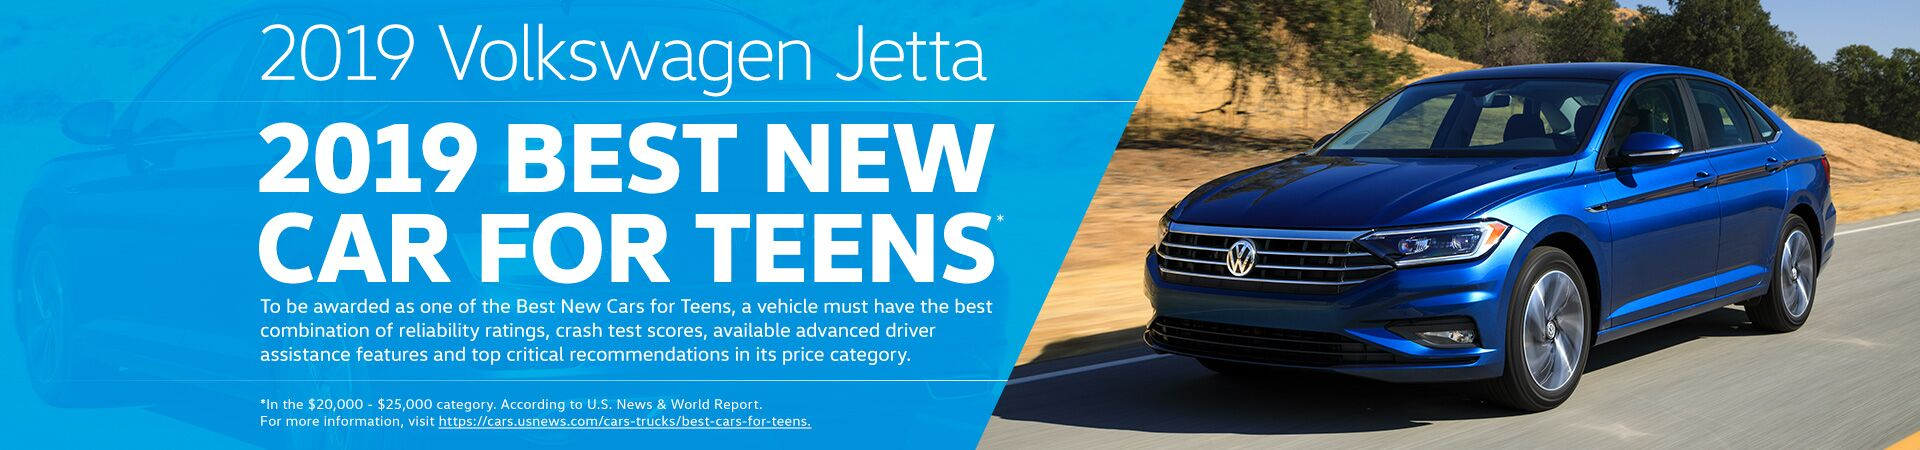 Best New Car for Teens